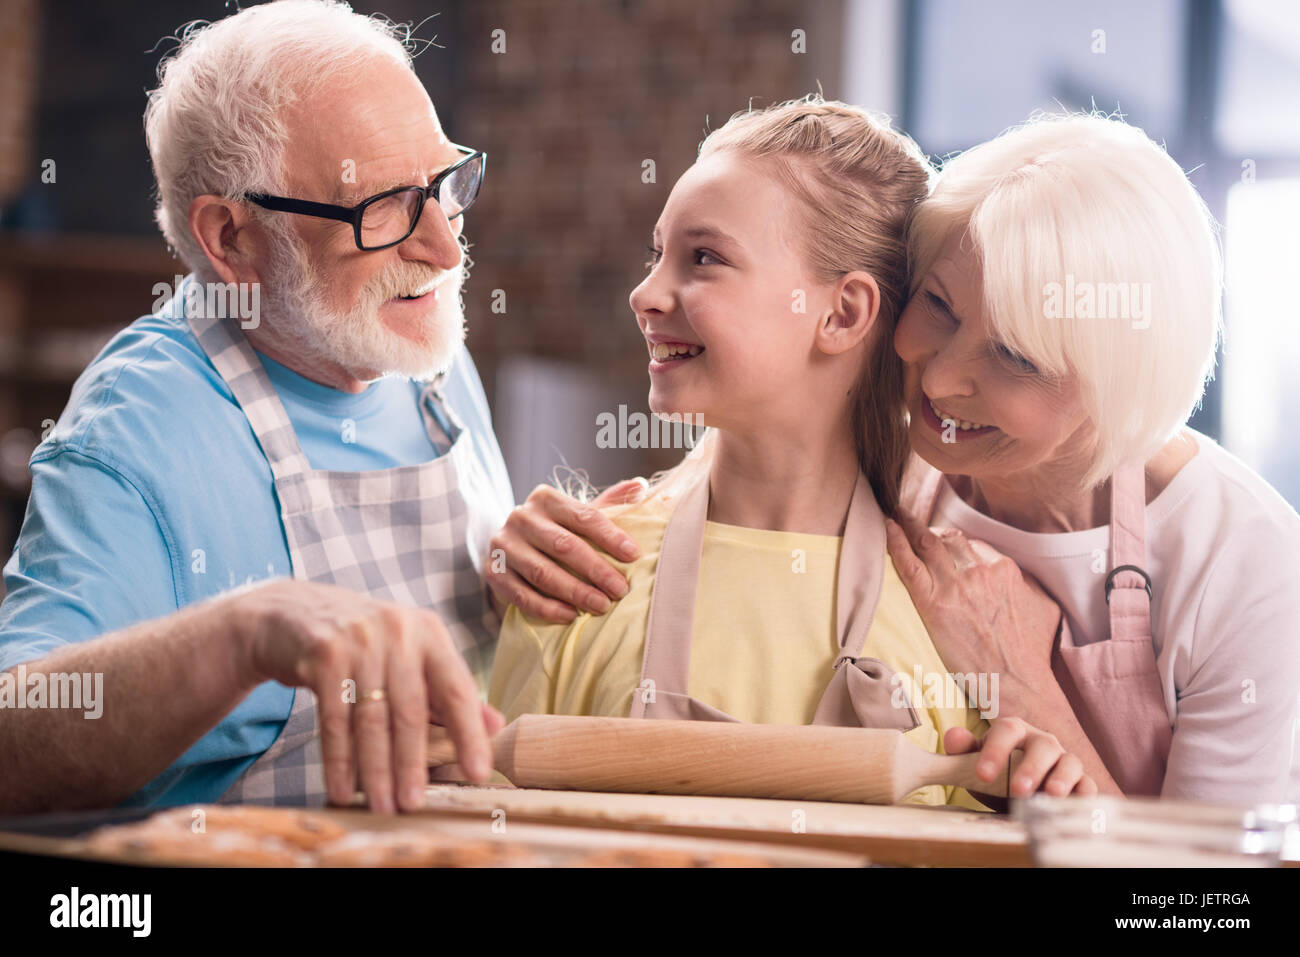 grandmother, grandfather and granddaughter cooking and kneading dough for cookies with kitchen utensils at kitchen - Stock Image